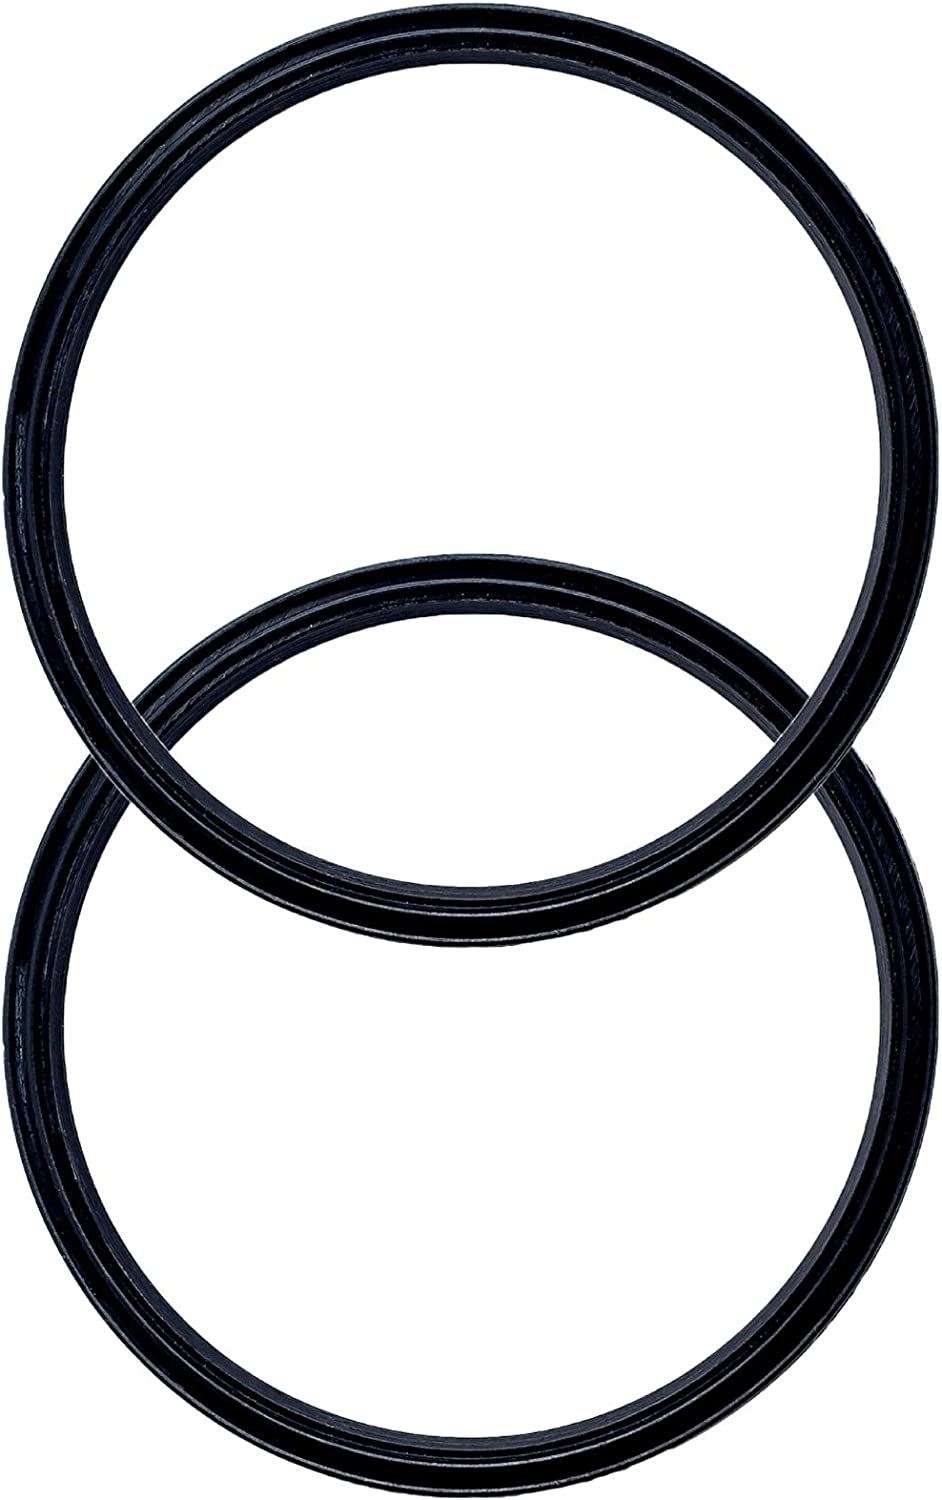 Pack of 2-20/10 oz Replacement Rubber Lid Ring, Gasket Seals, Lid for Insulated Stainless Steel Tumblers, Cups Vacuum Effect, fit for Brands - Yeti, Ozark Trail, Beast by C&Berg Model 2021